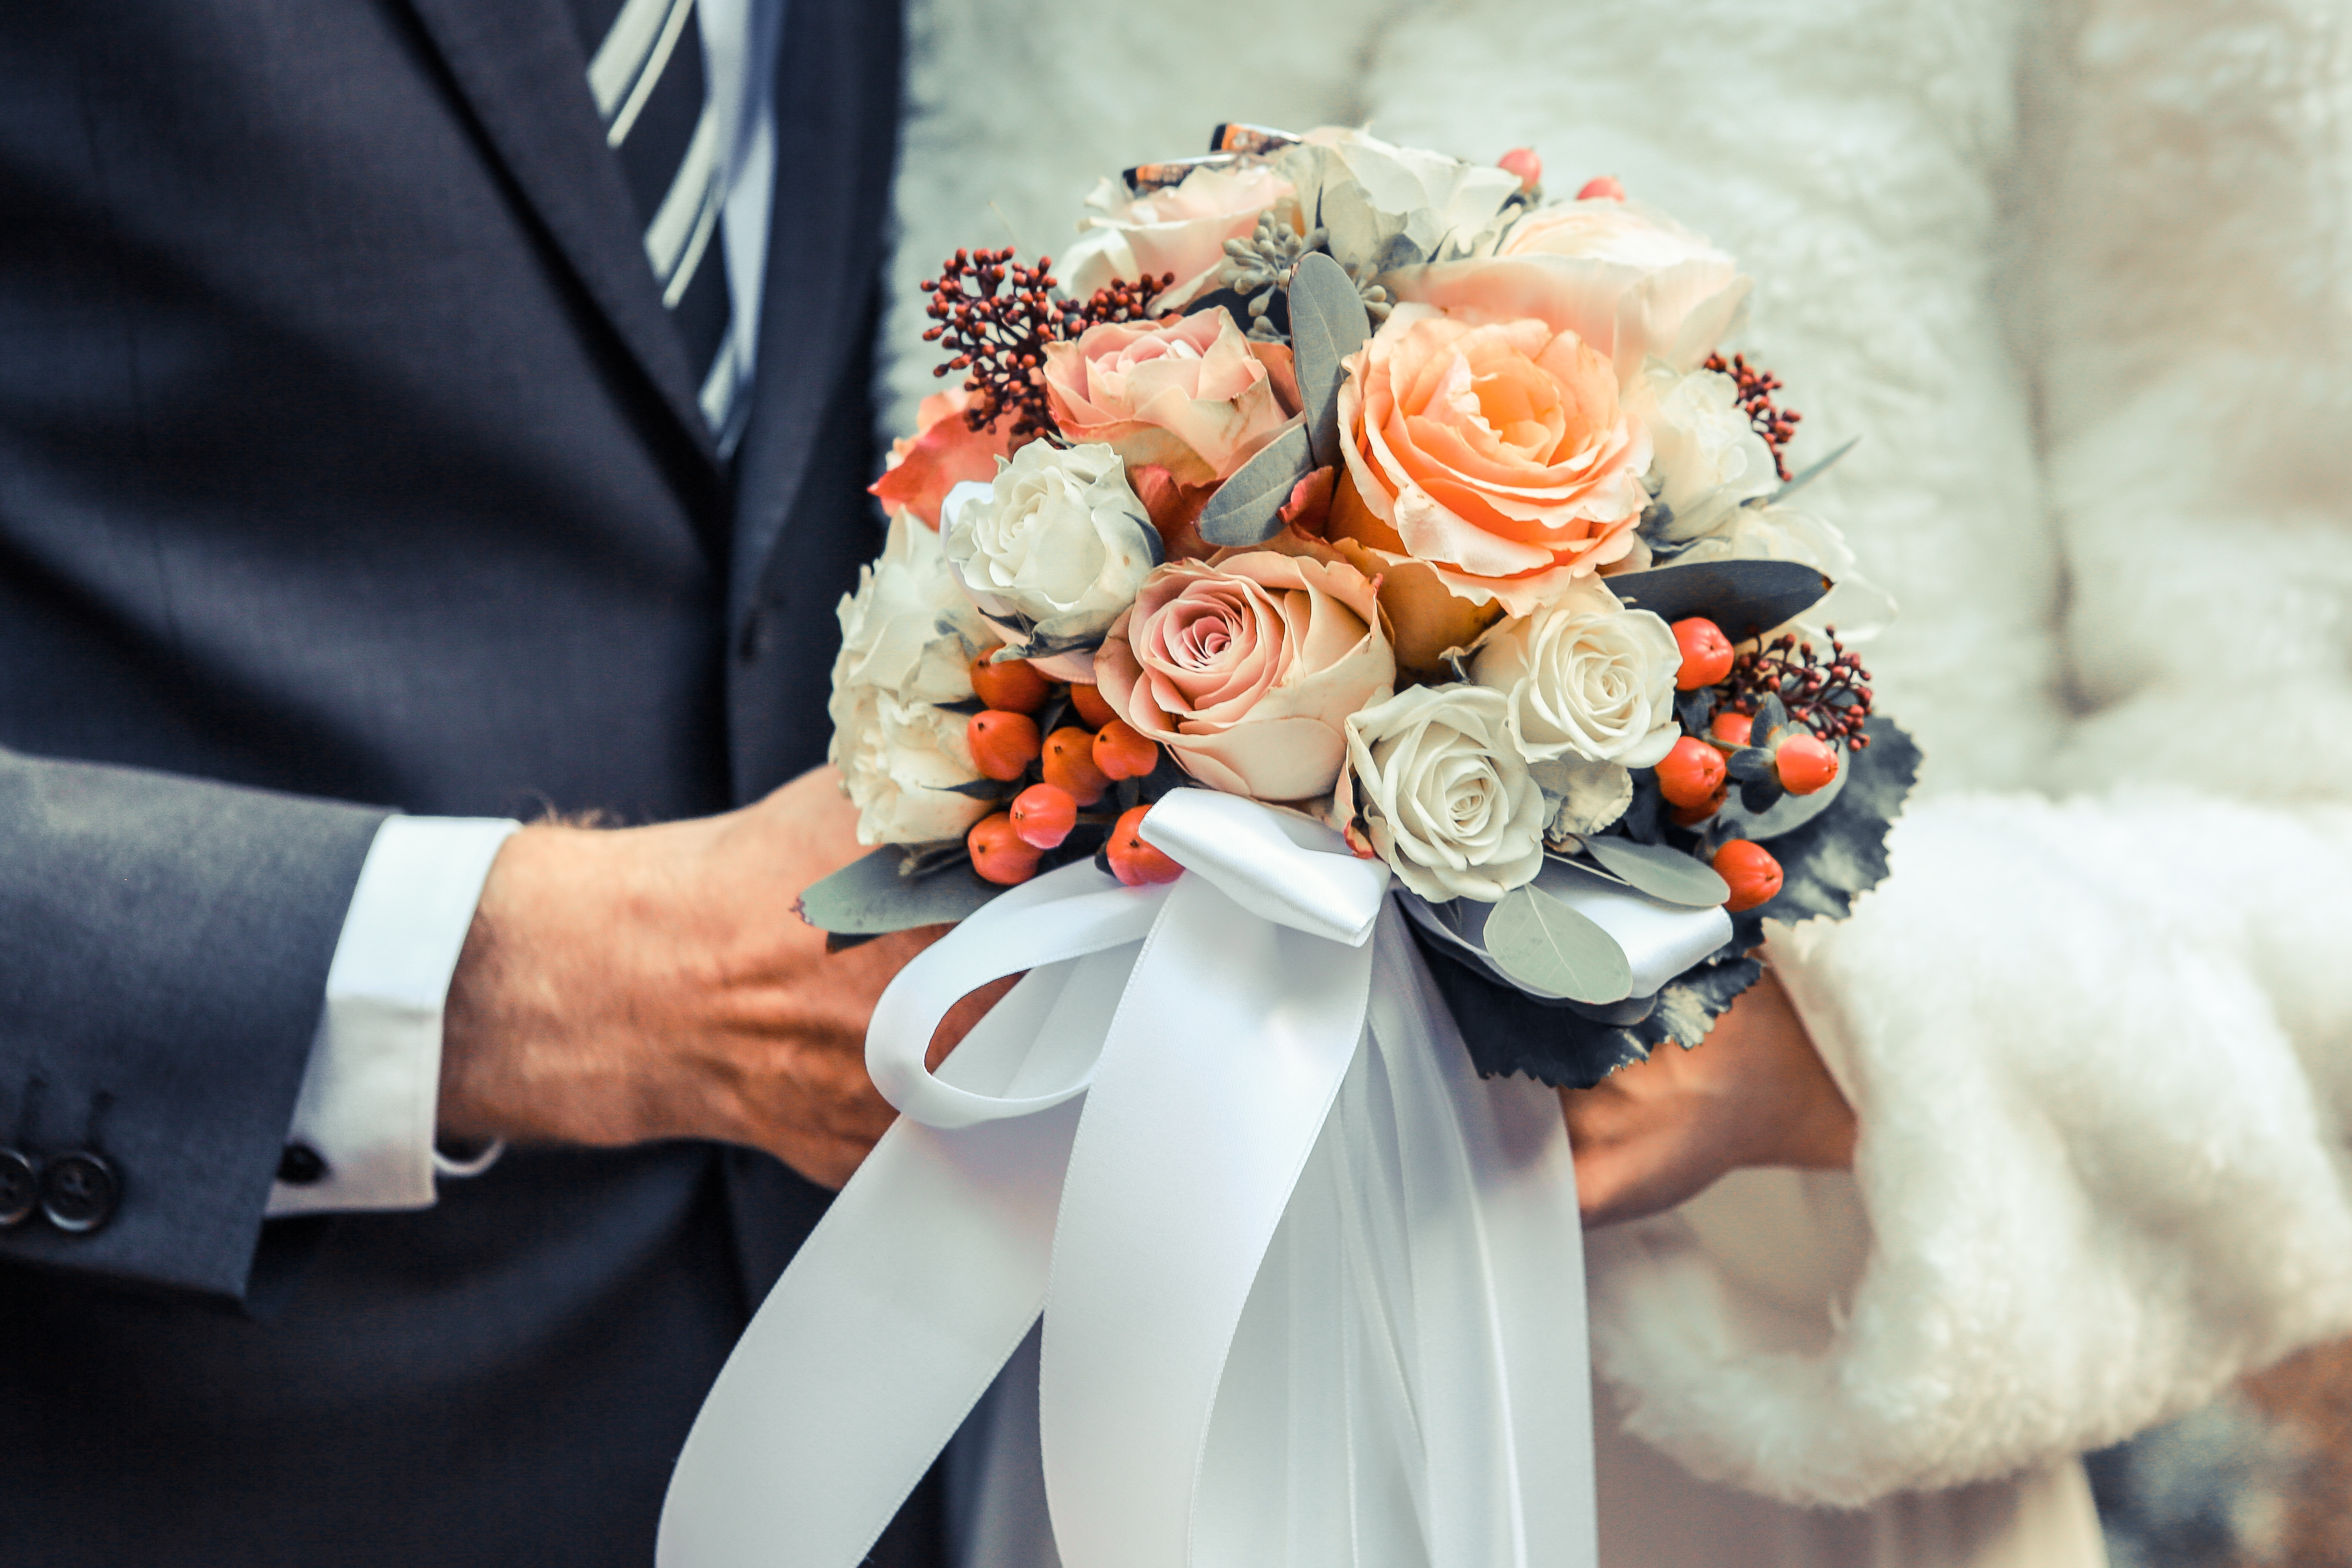 7 Wedding Trends That are Here to Stay in 2019